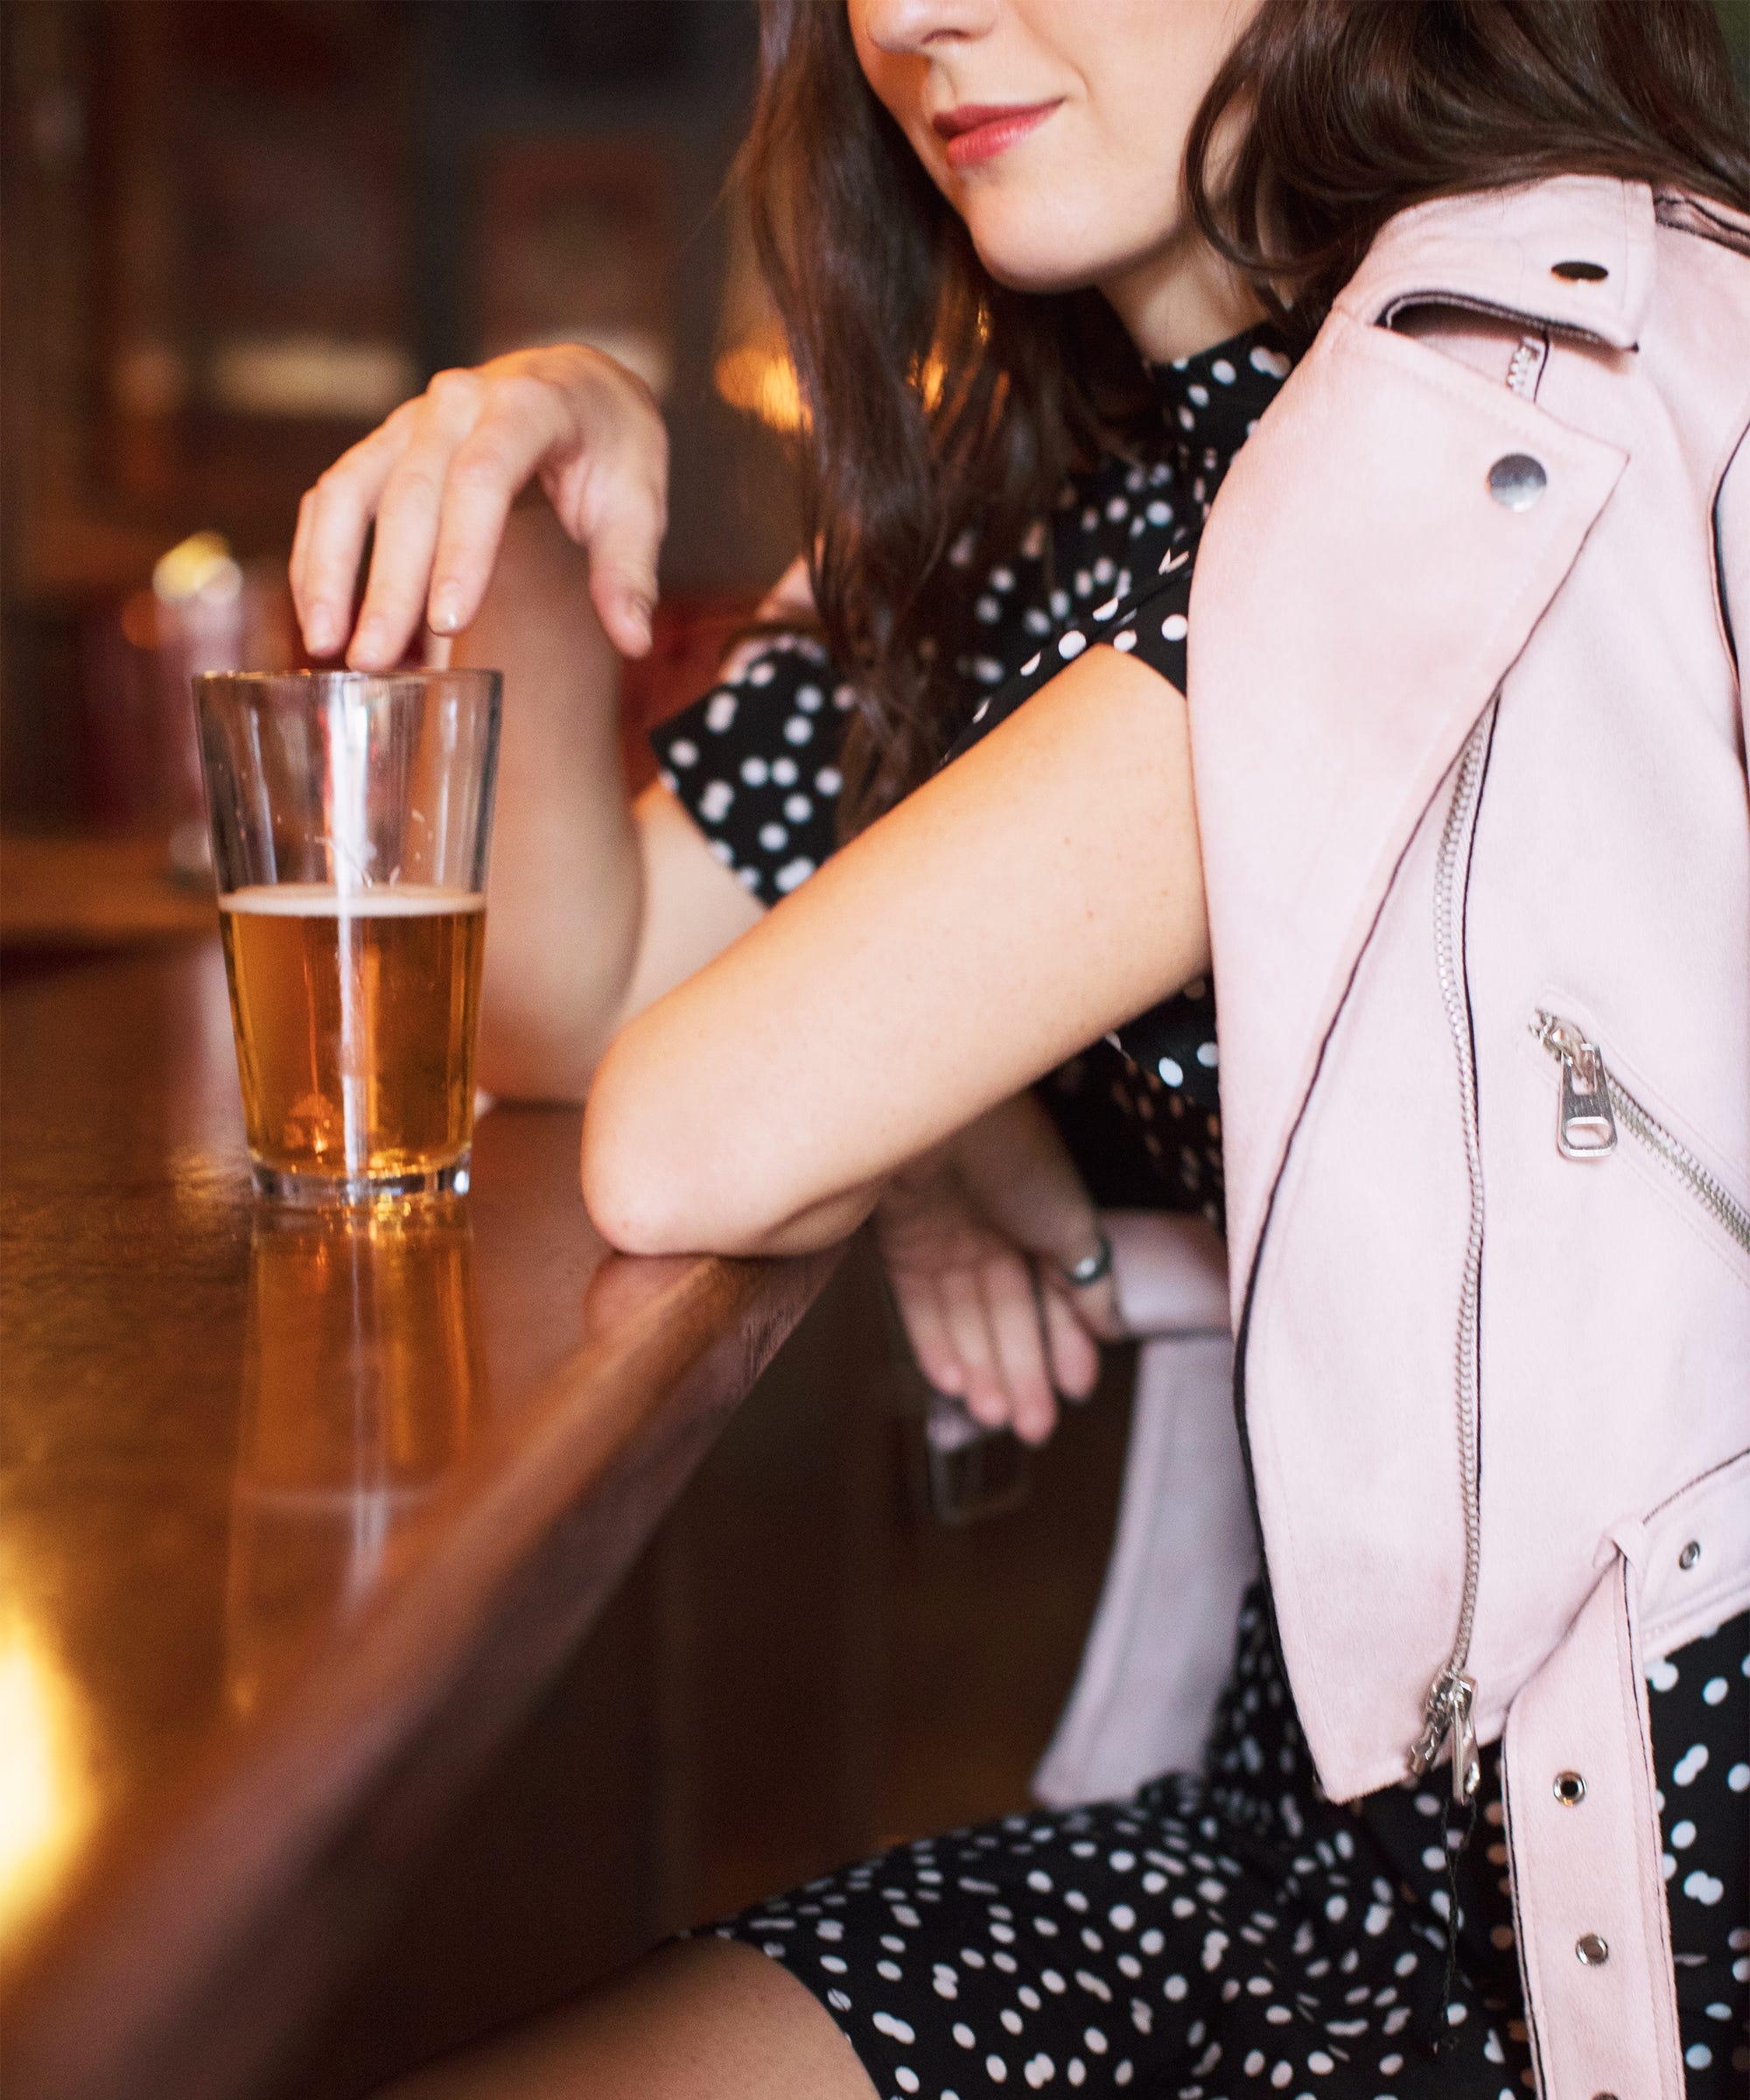 How Alcohol Impacts Your Sex Life